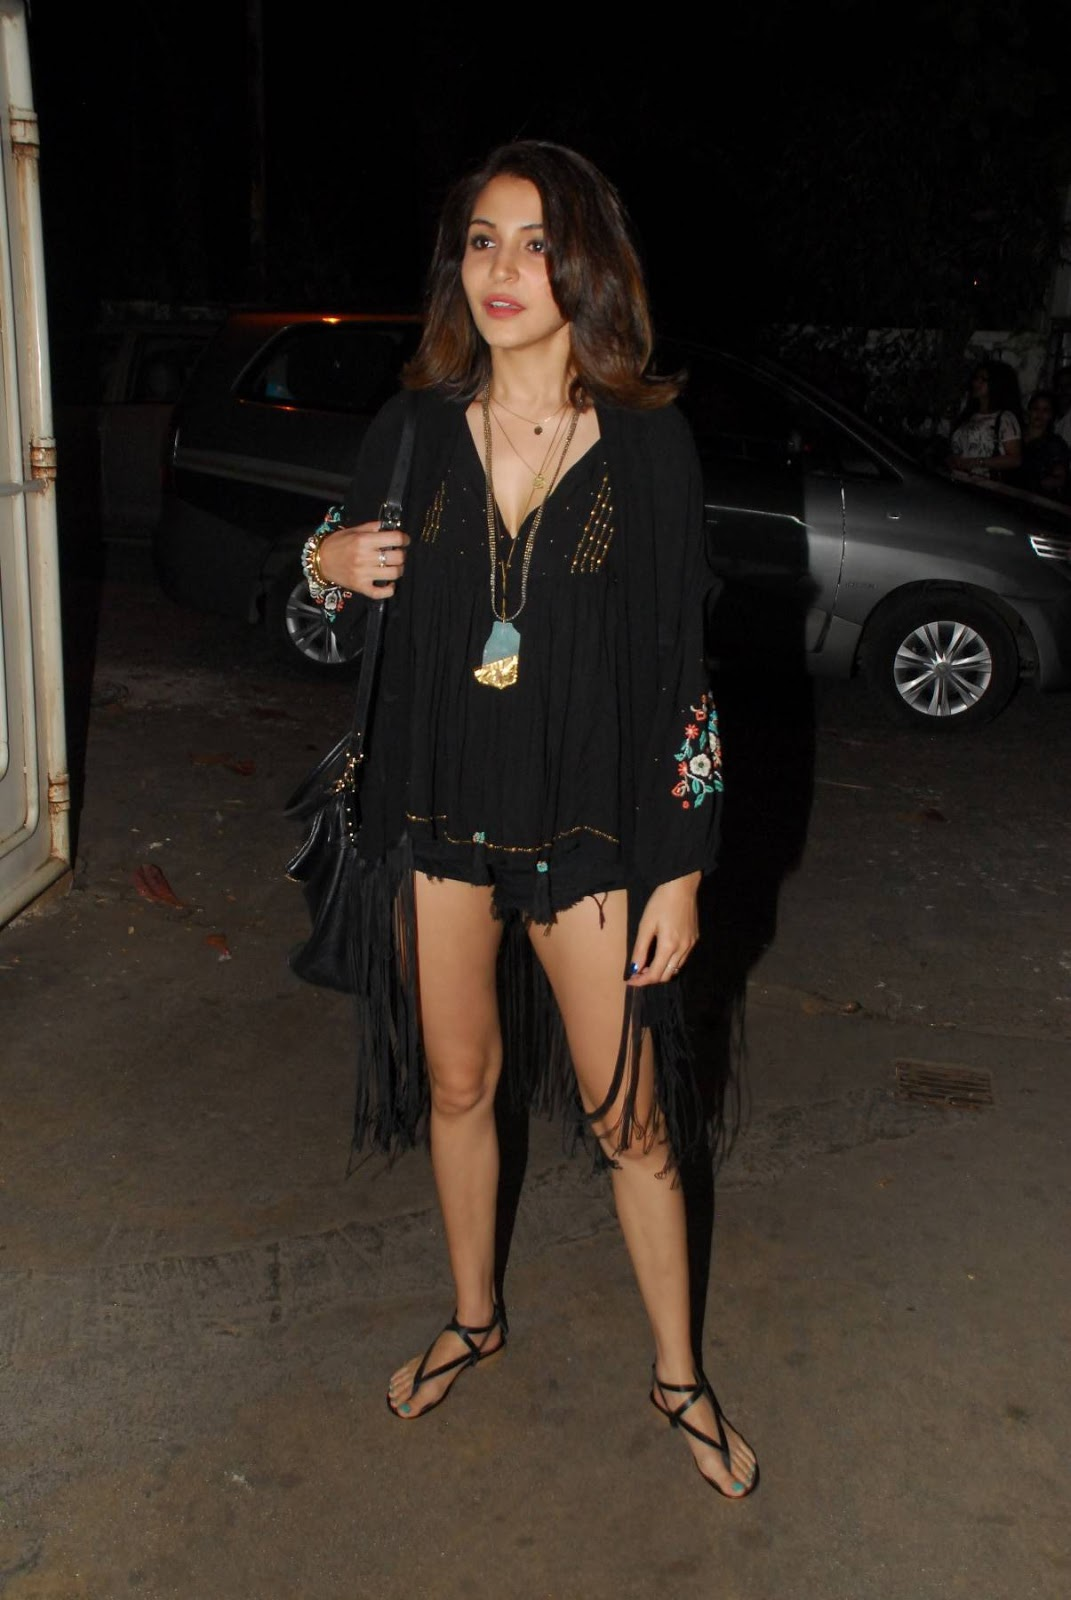 Anushka Sharma Hot Legs Thigh Show In Short Black Dress